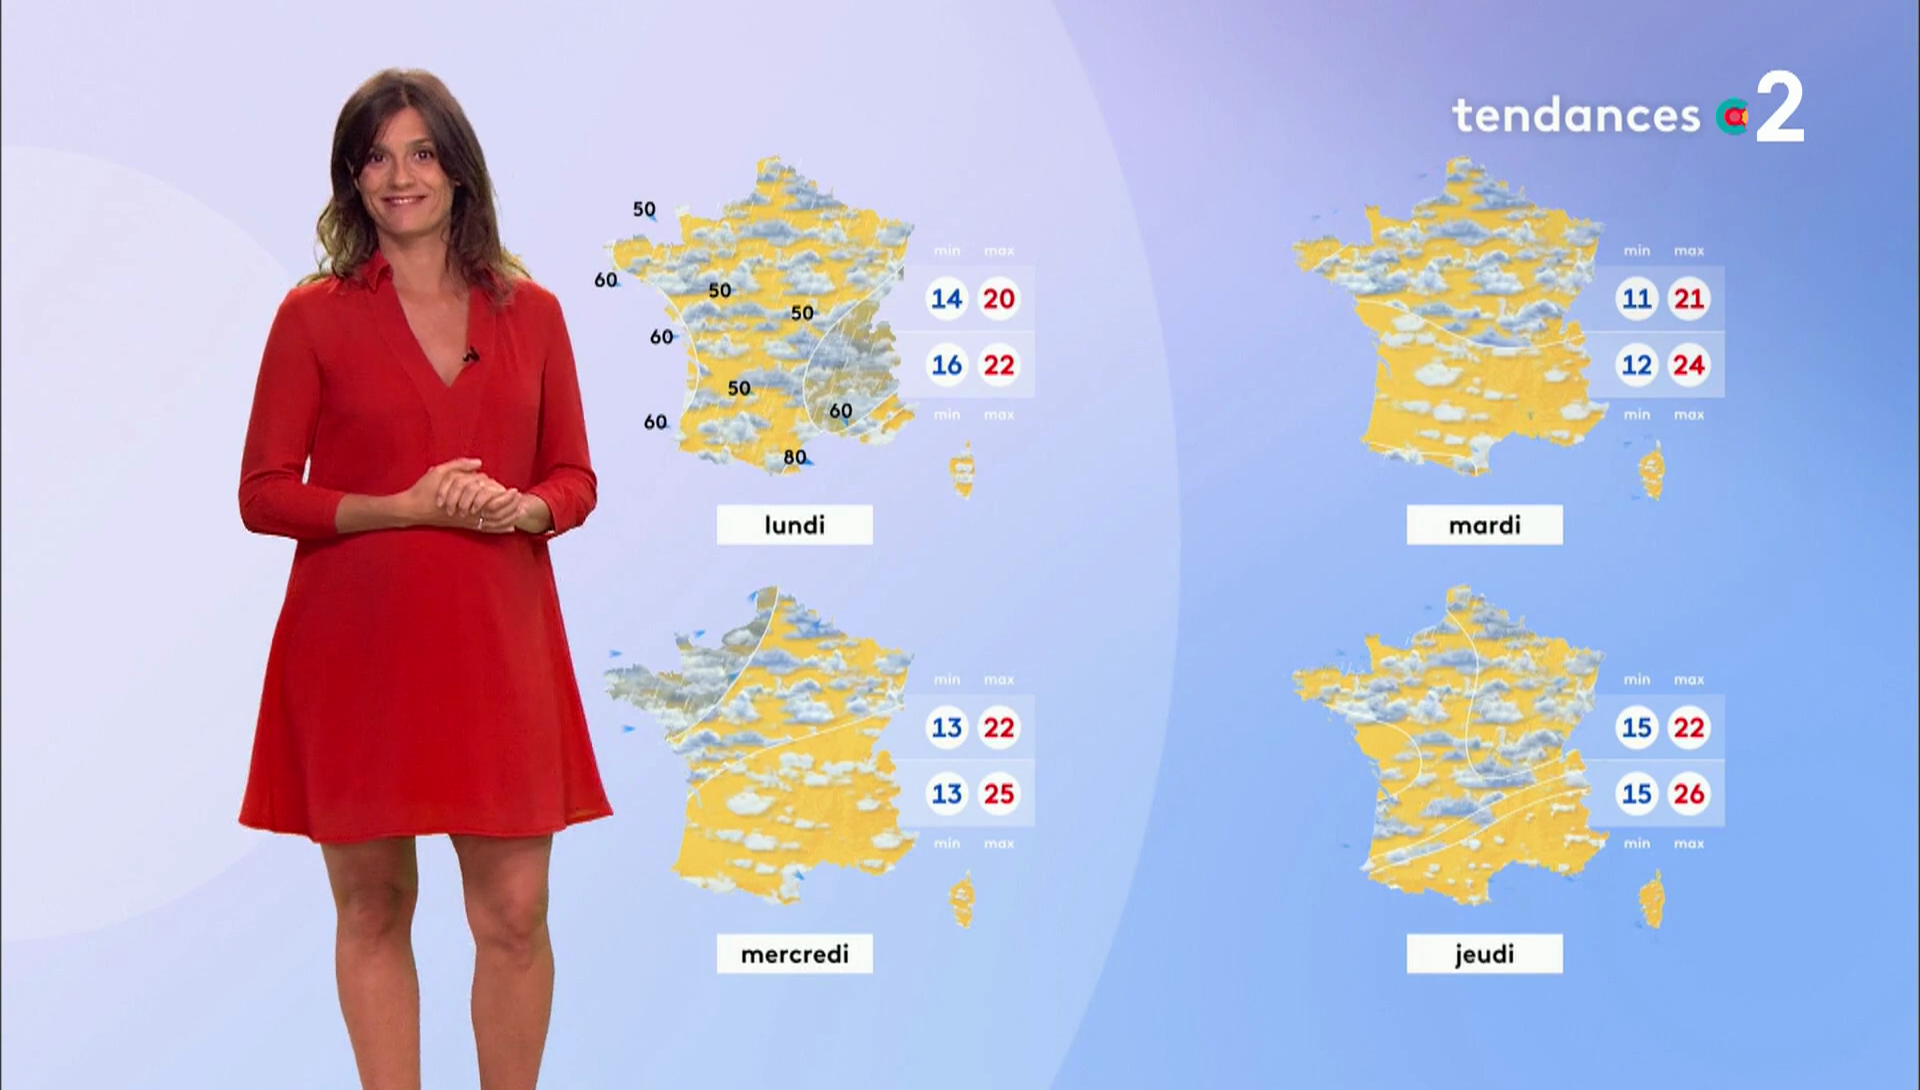 taniayoung09.2019_08_09_meteo13hFRANCE2